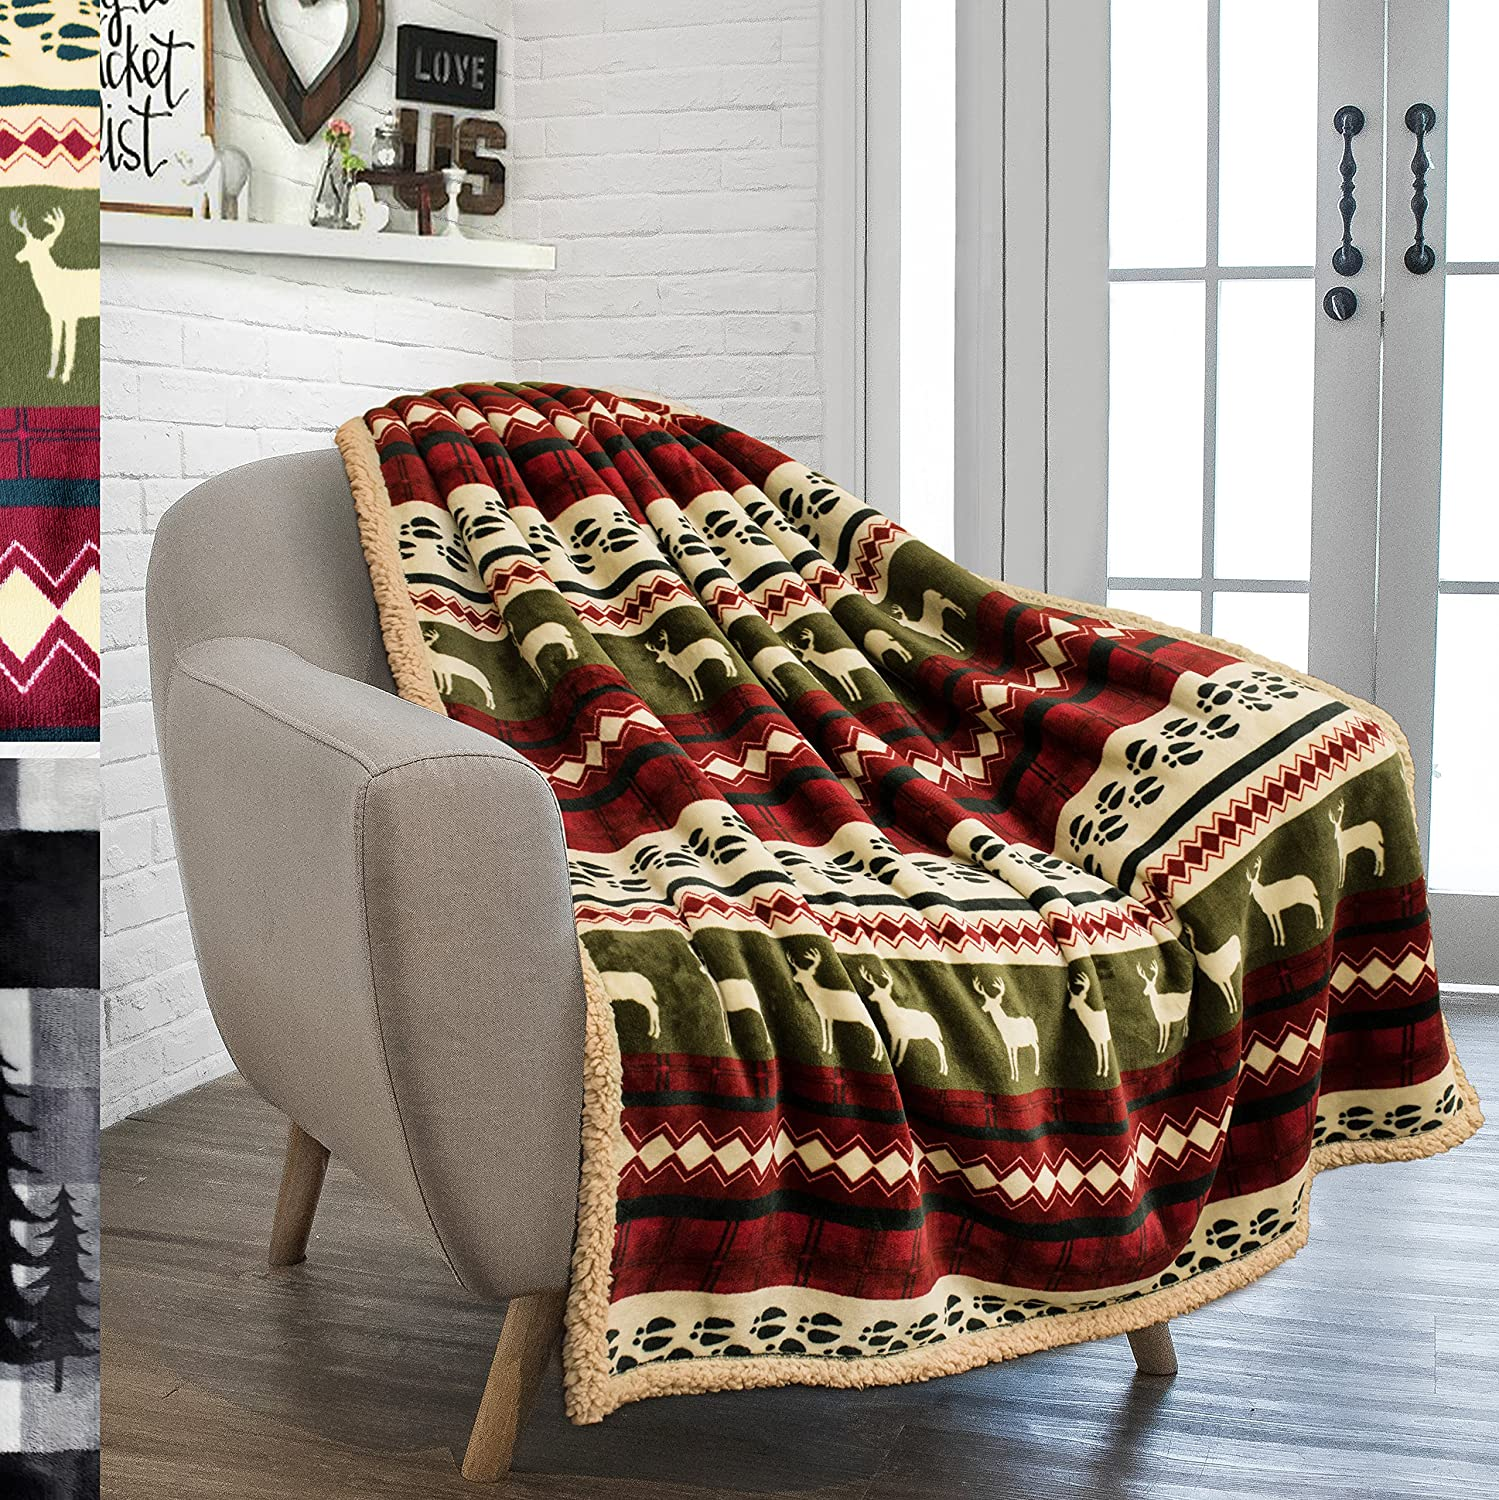 Premium Plush Sherpa Throw Christmas Blanket